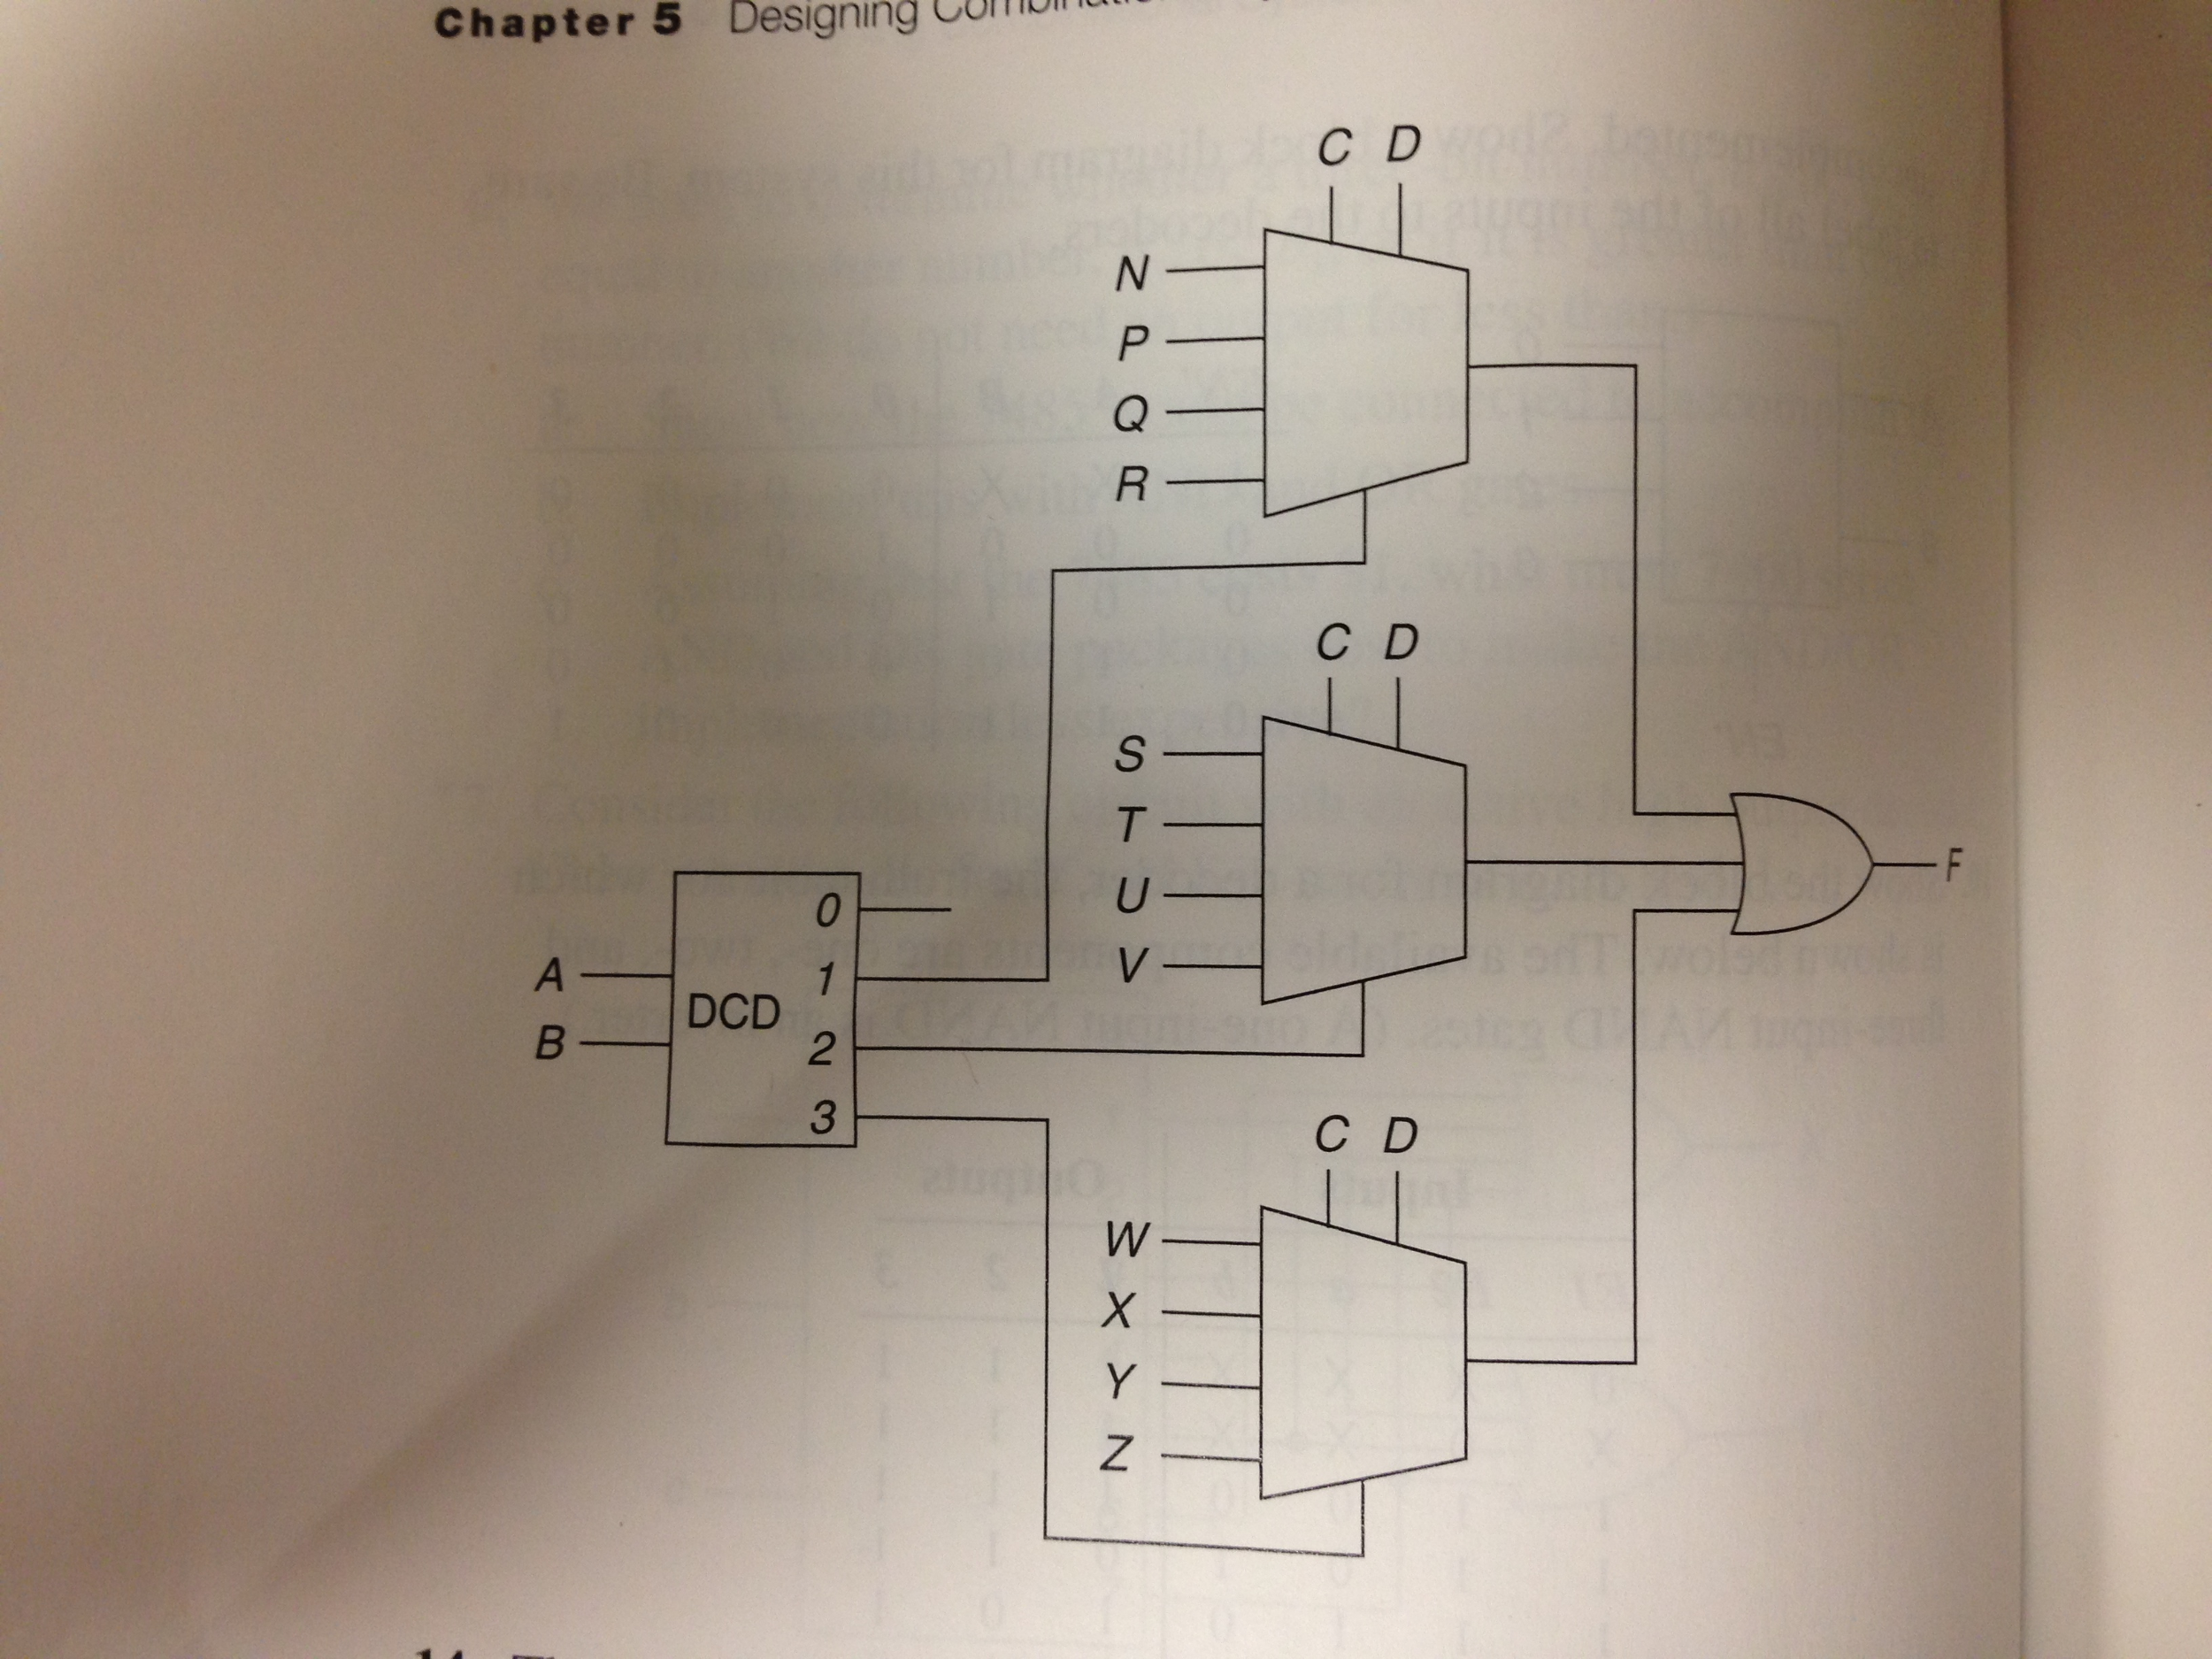 Design a circuit to multiply two 2-bit numbers